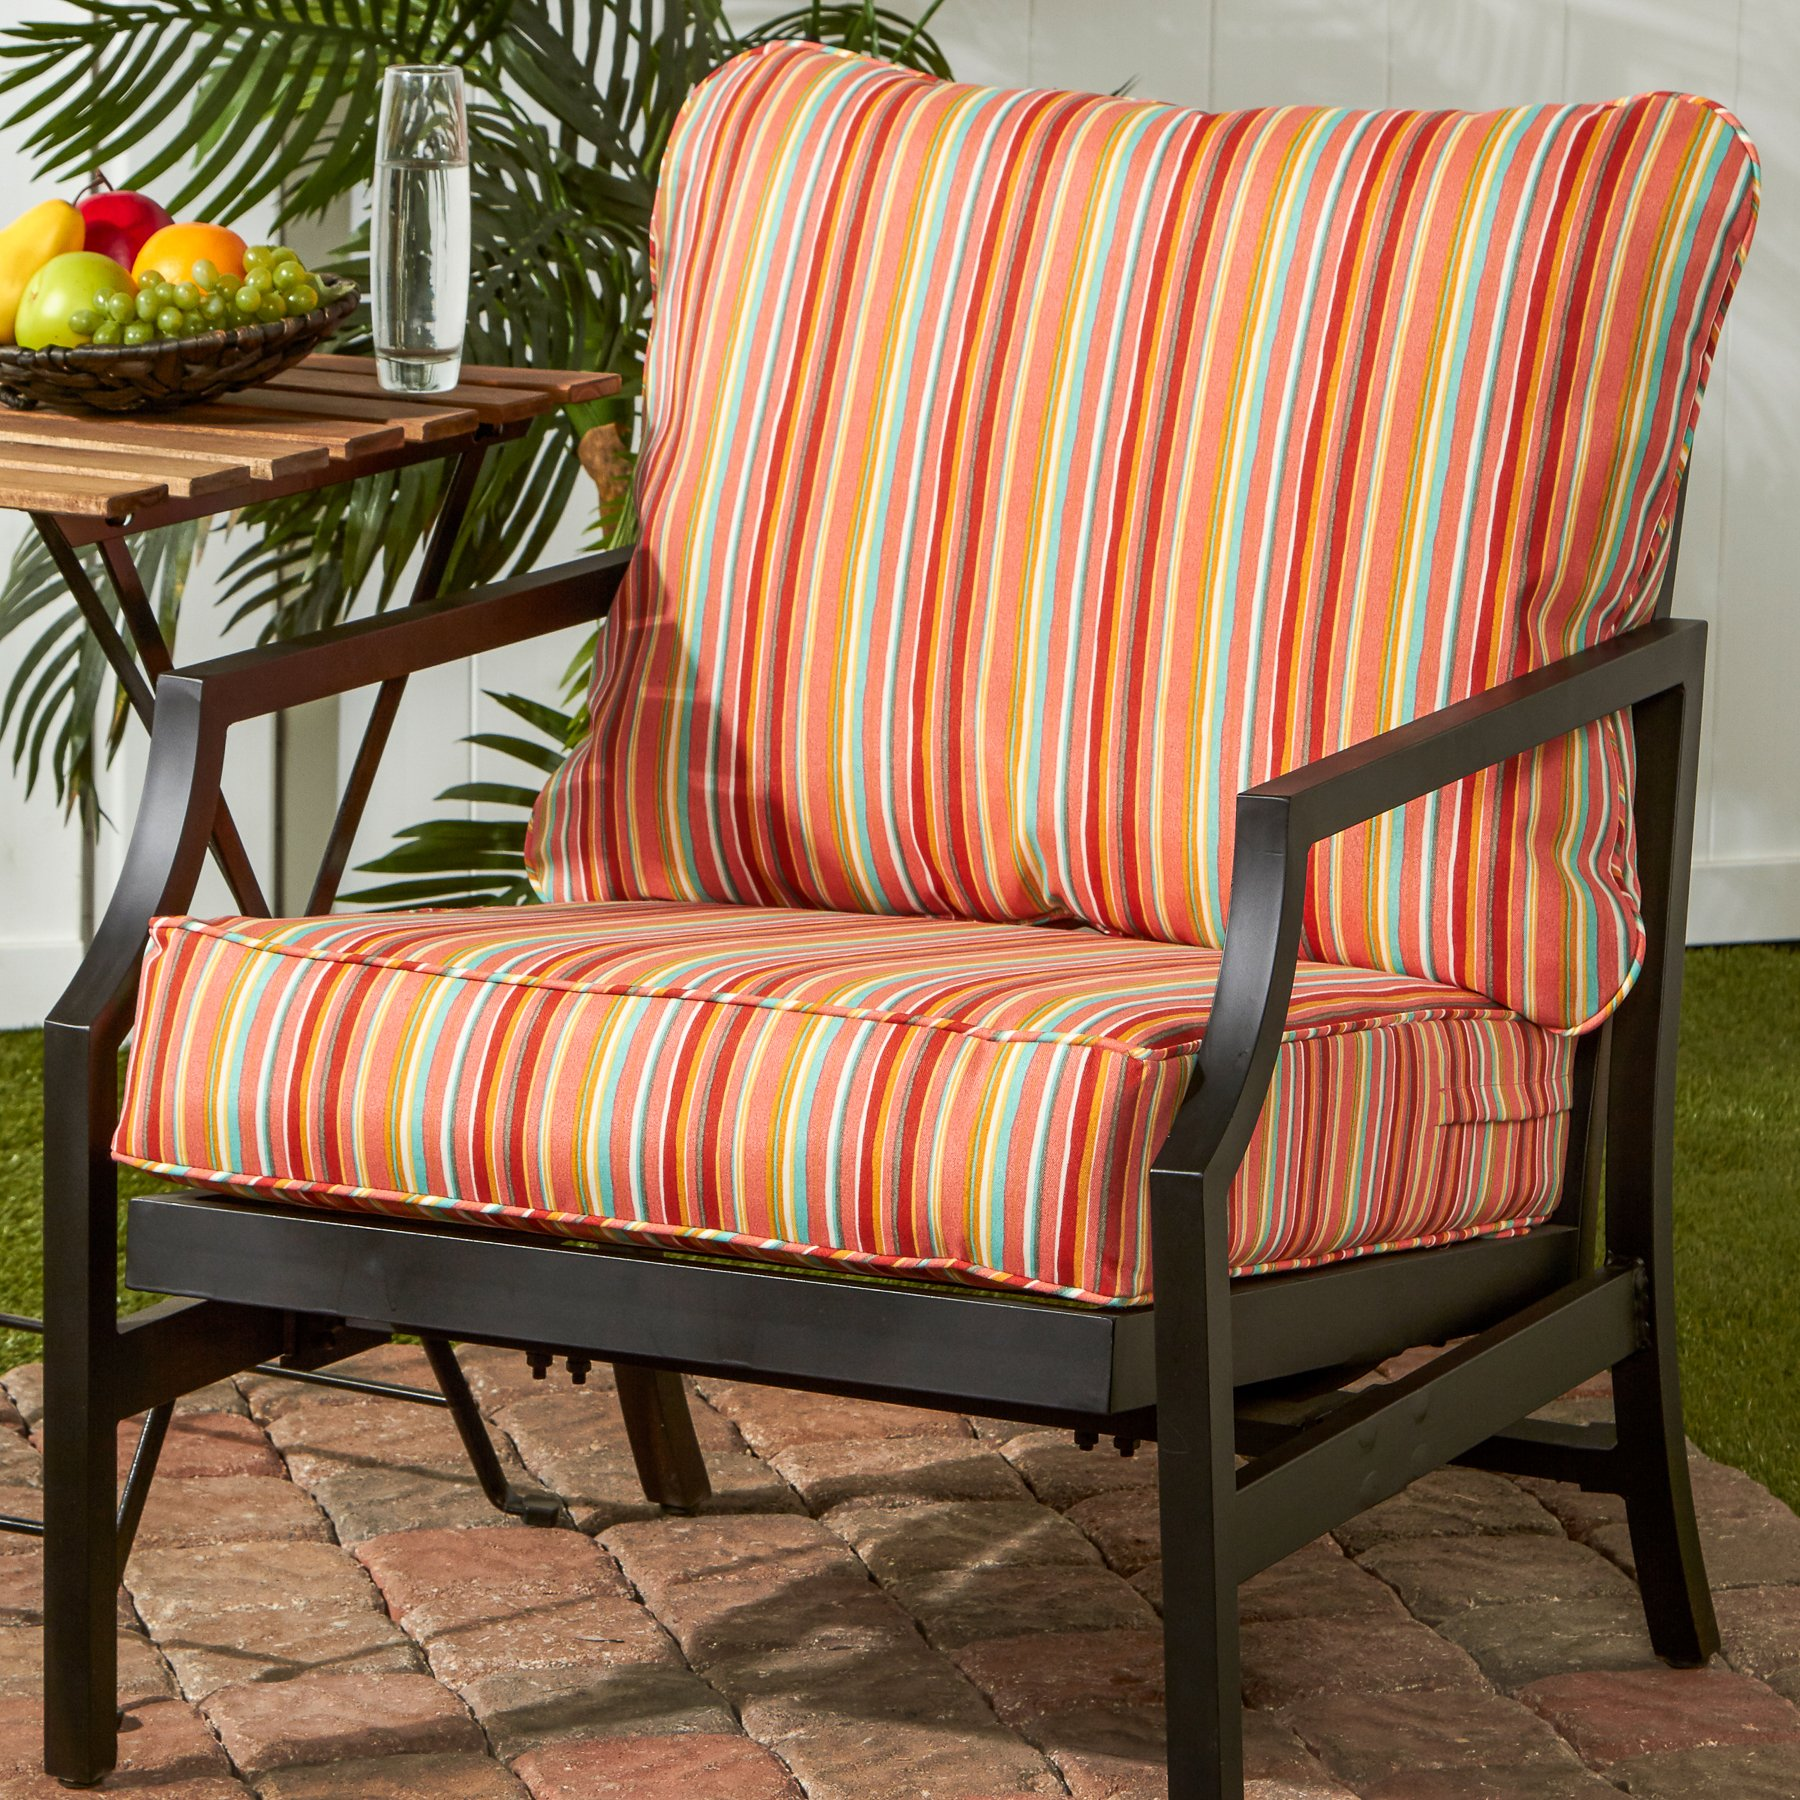 Greendale Home Fashions Deep Seat Cushion Set in Coastal Stripe, Watermelon by Greendale Home Fashions (Image #3)